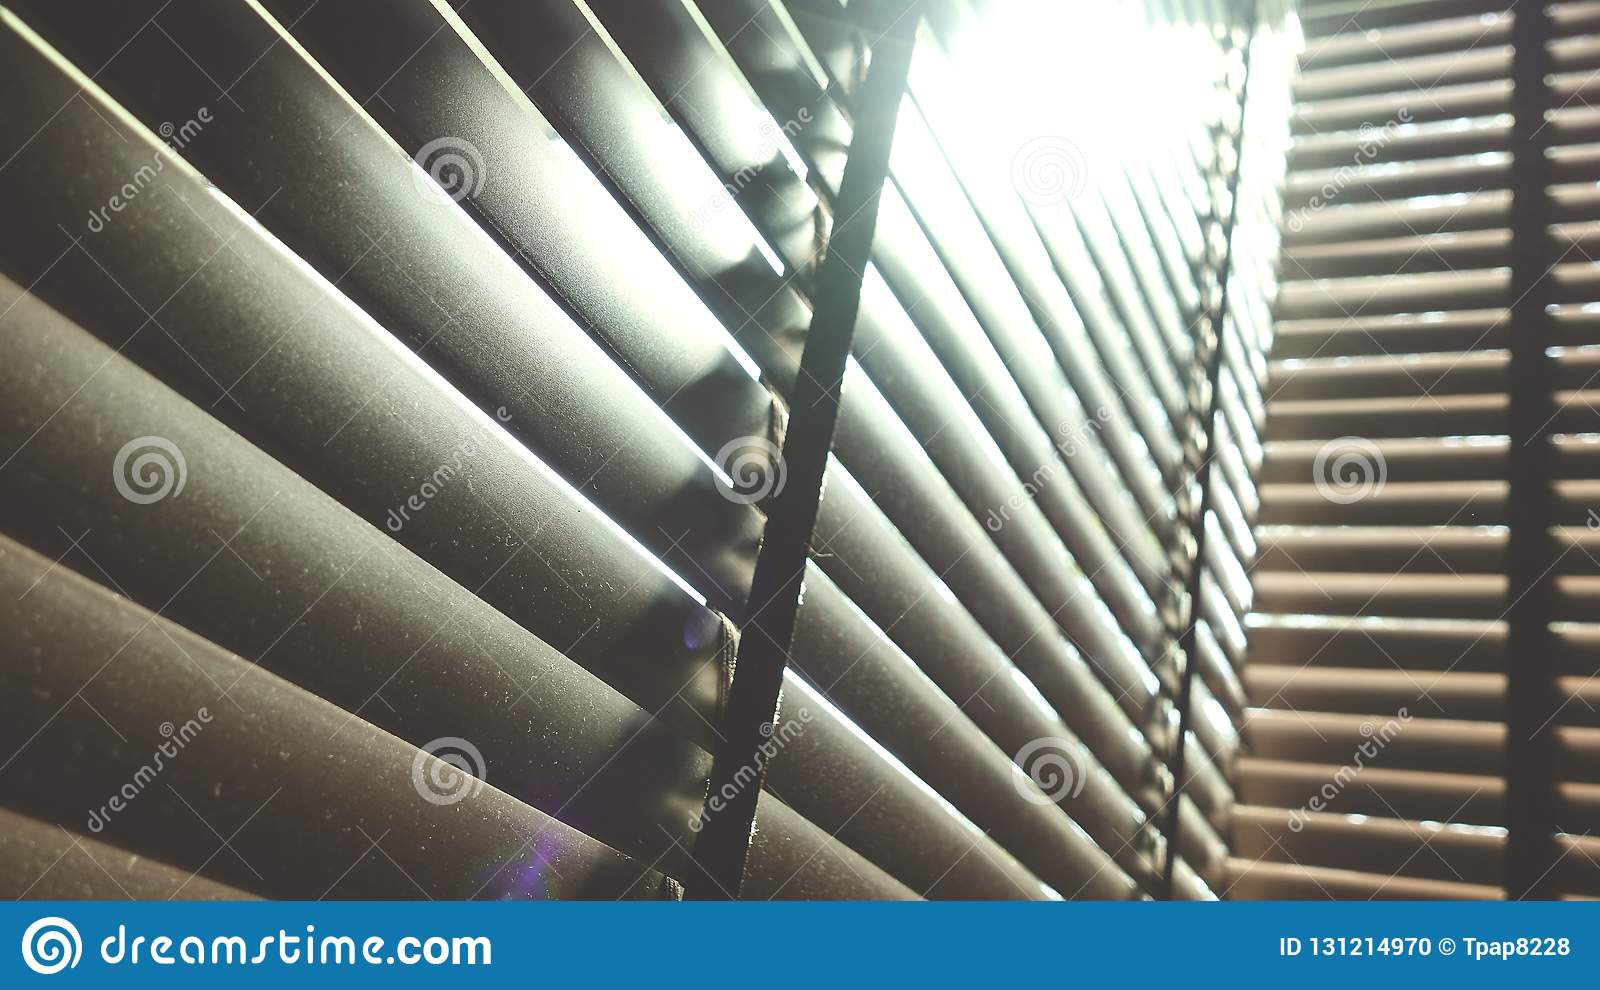 Blinds Evening Sun Light Outside Window Blinds Sunshine And Shadow On Window Blind Decorative Interior In Home Stock Photo Image Of Open Decor 131214970